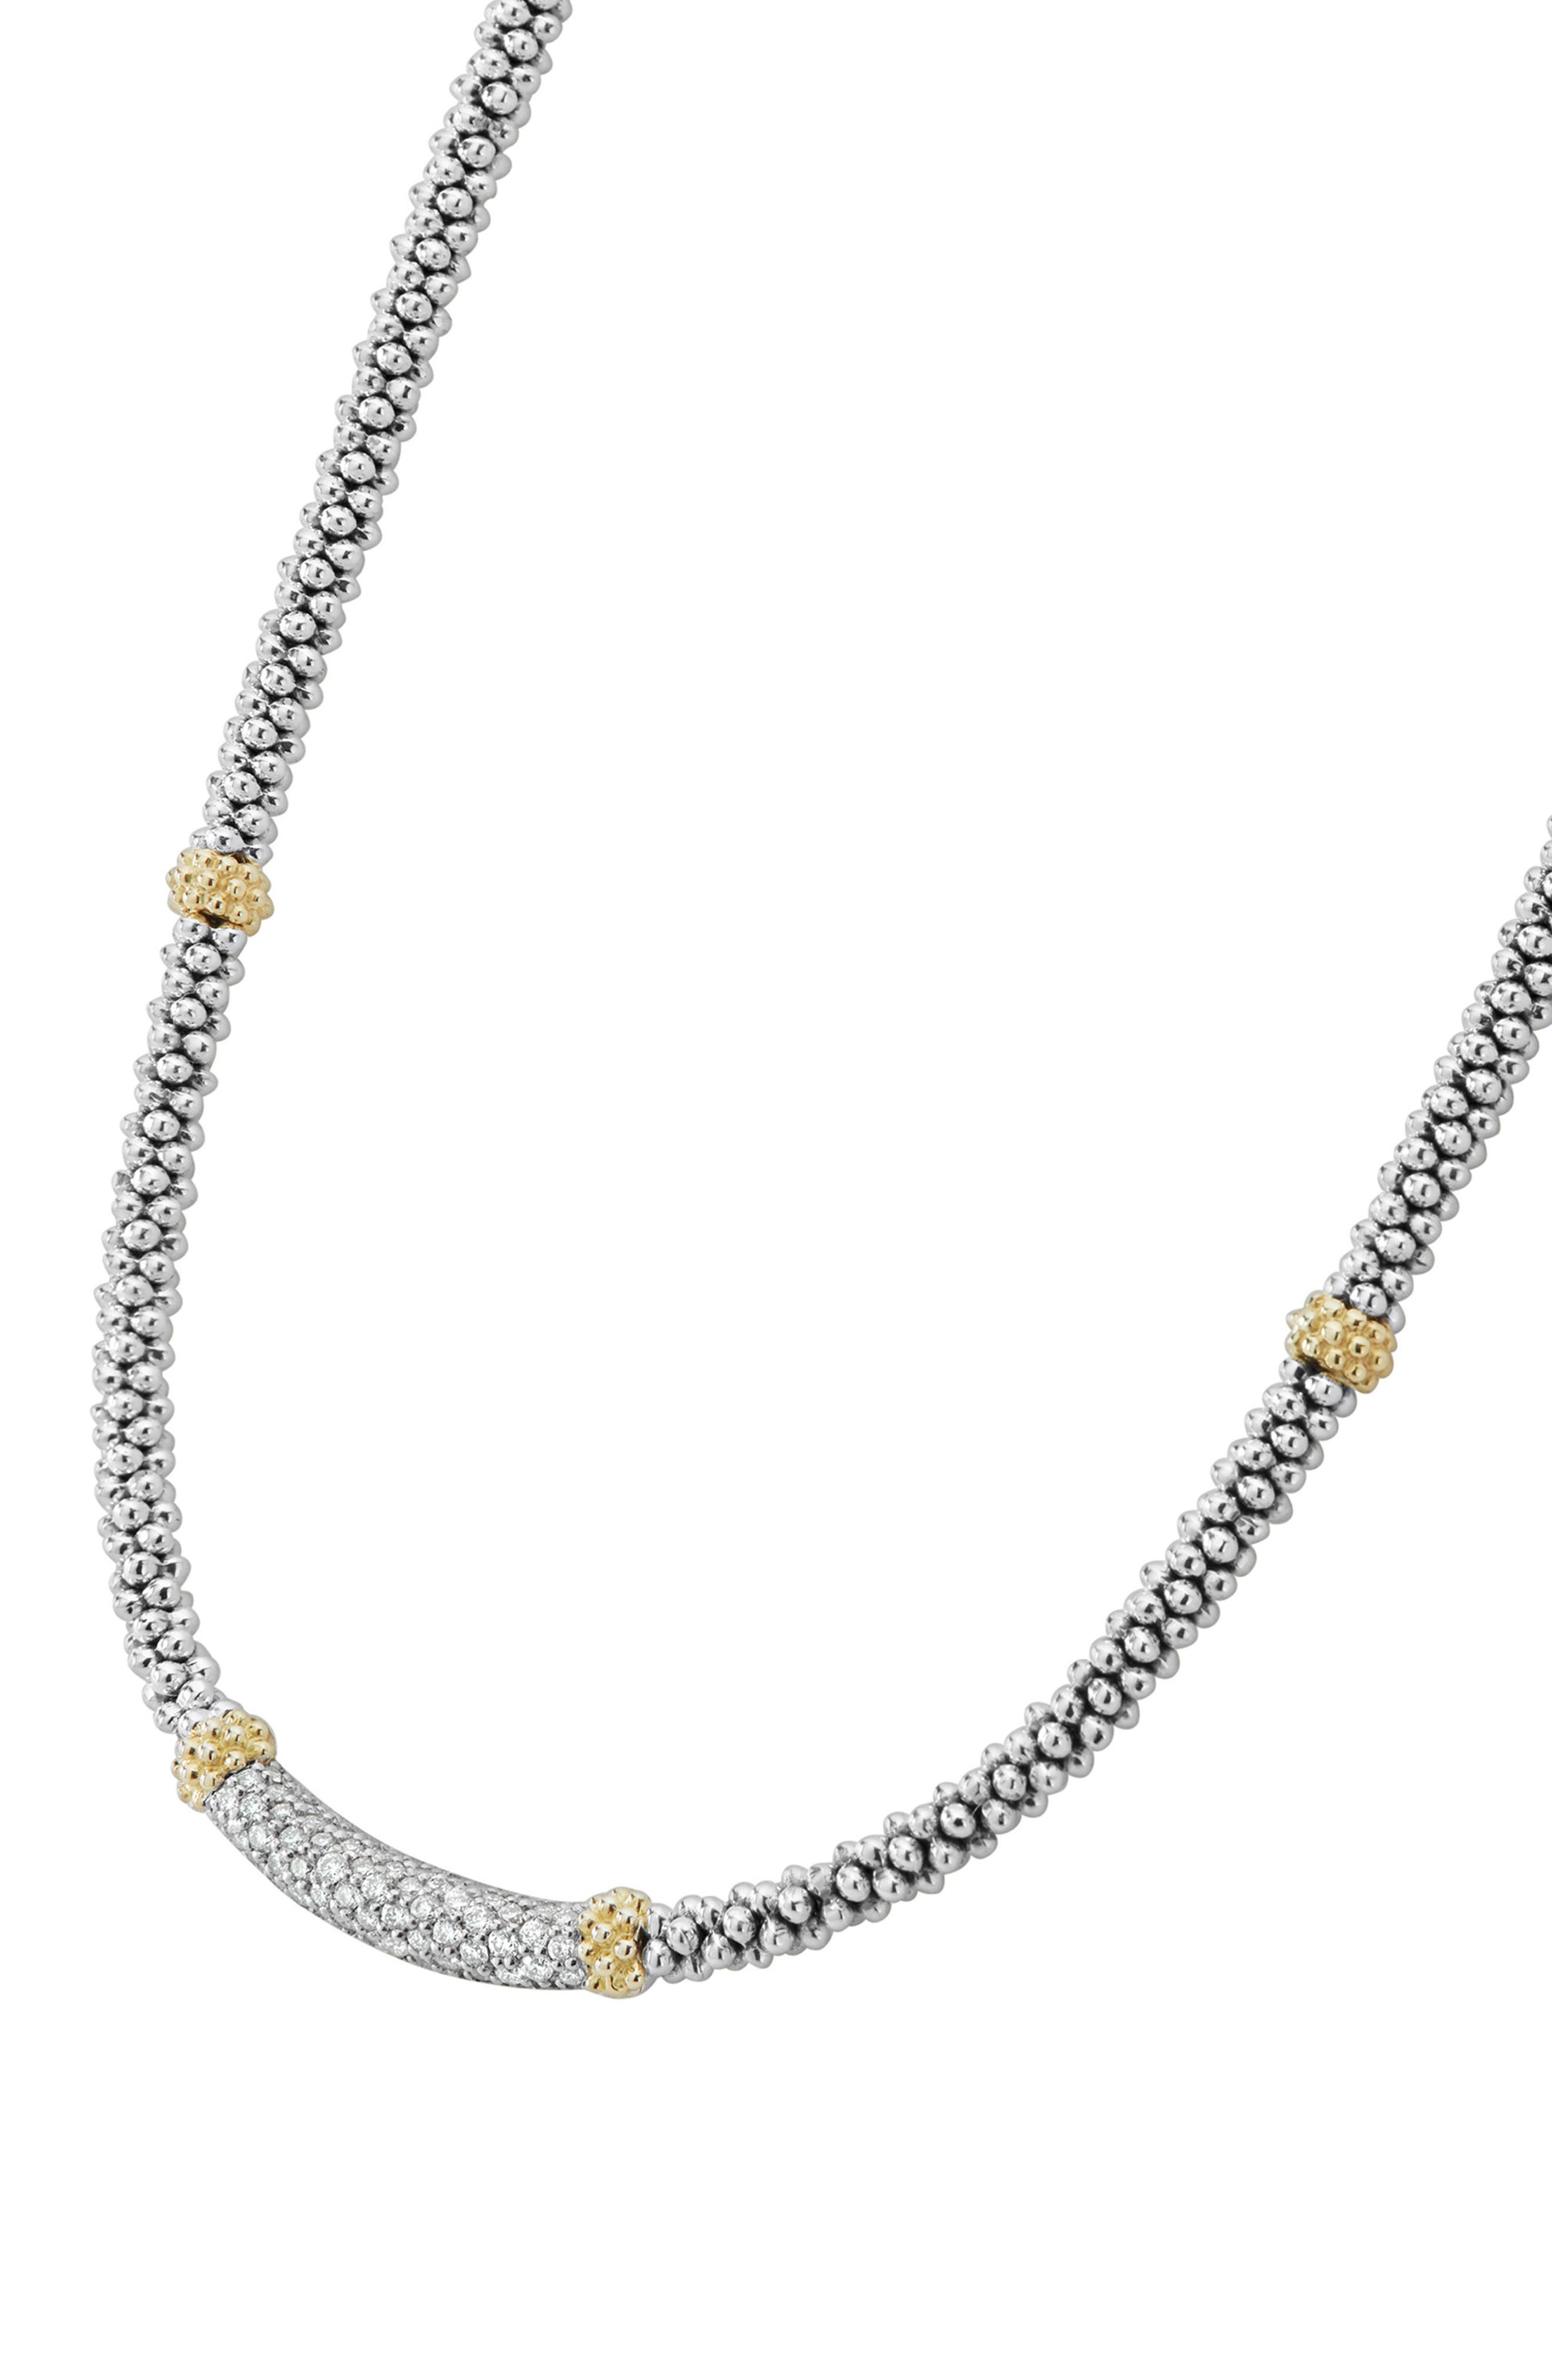 Lux Diamond Rope Necklace,                             Alternate thumbnail 5, color,                             Silver/ Diamond